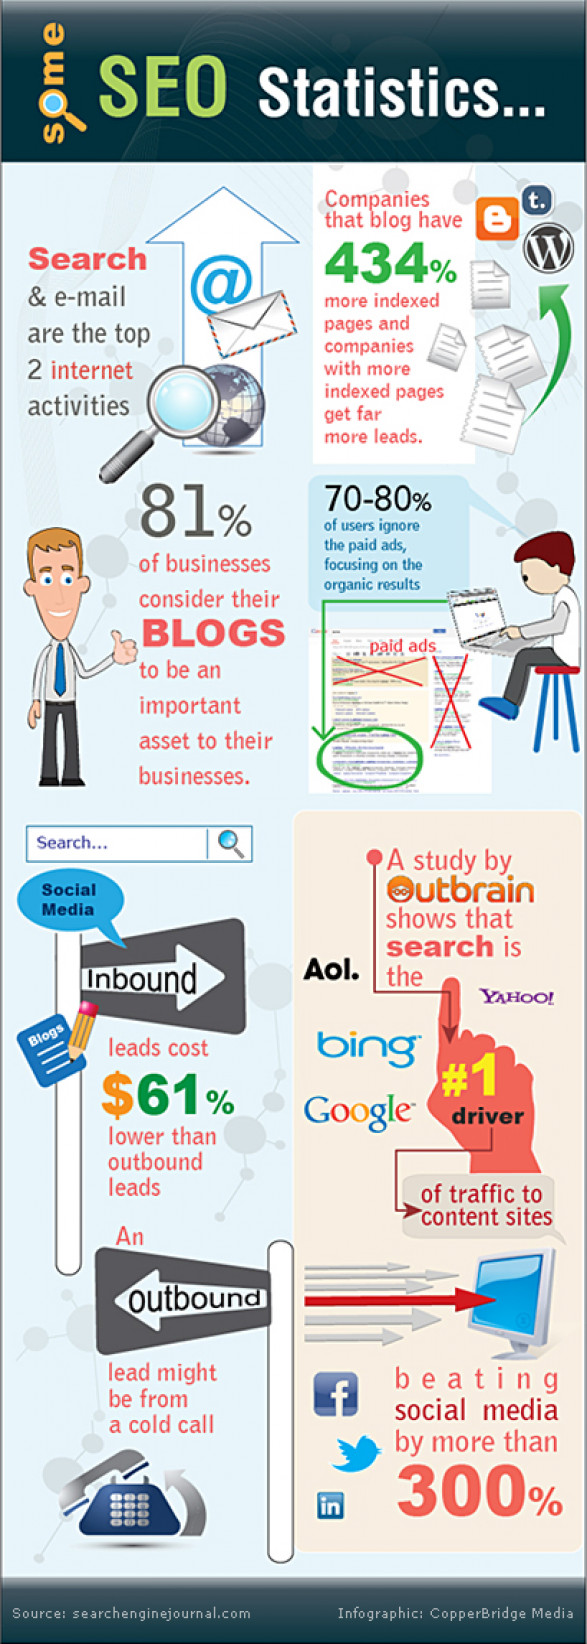 What do the business numbers say about SEO?